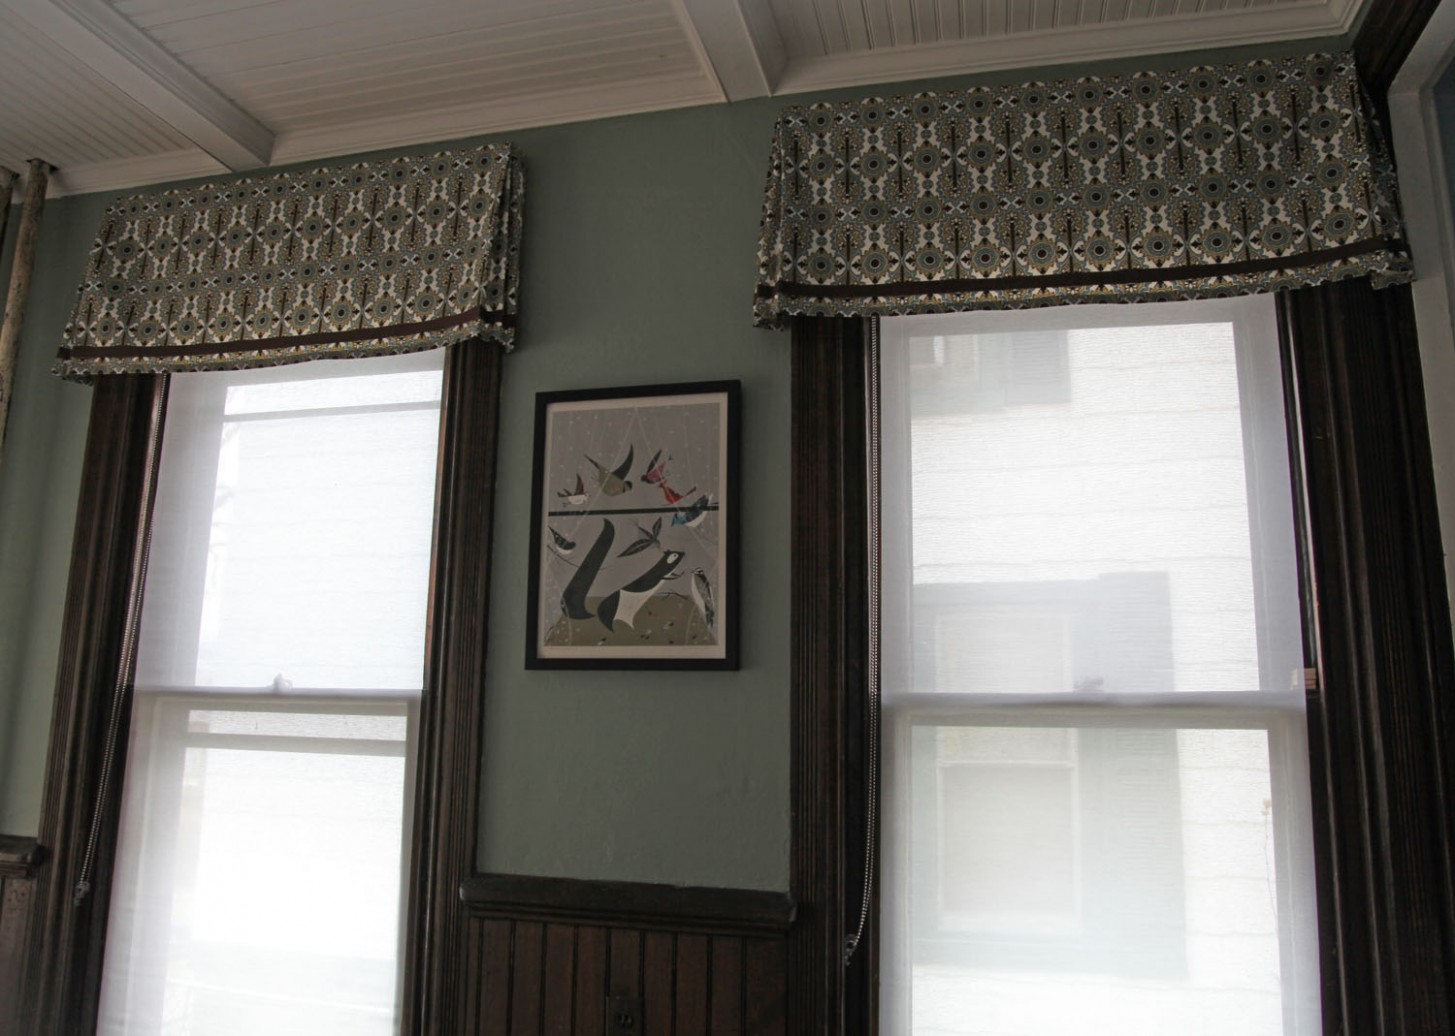 The Dining Room Windows: The Valances  Stately Kitsch - Dining Room Valance Ideas